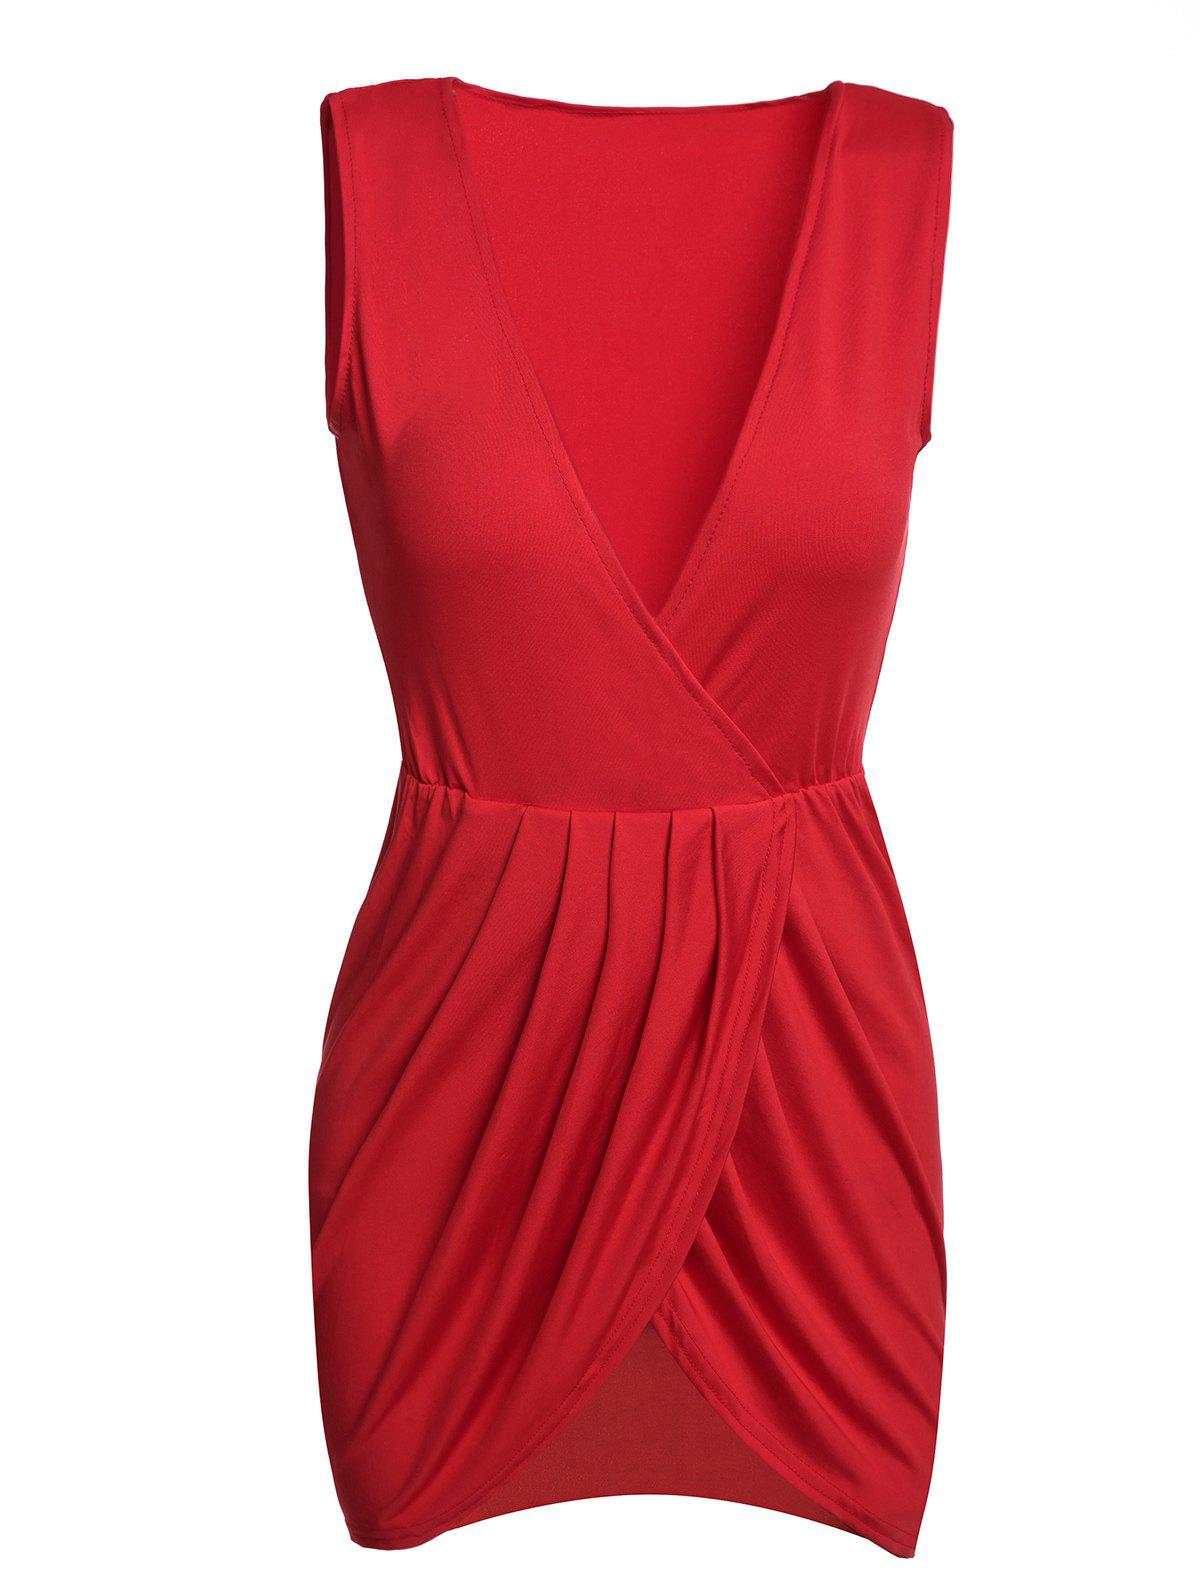 Sexy Women's Plunging Neck Sleeveless Solid Color Mini Dress - RED L